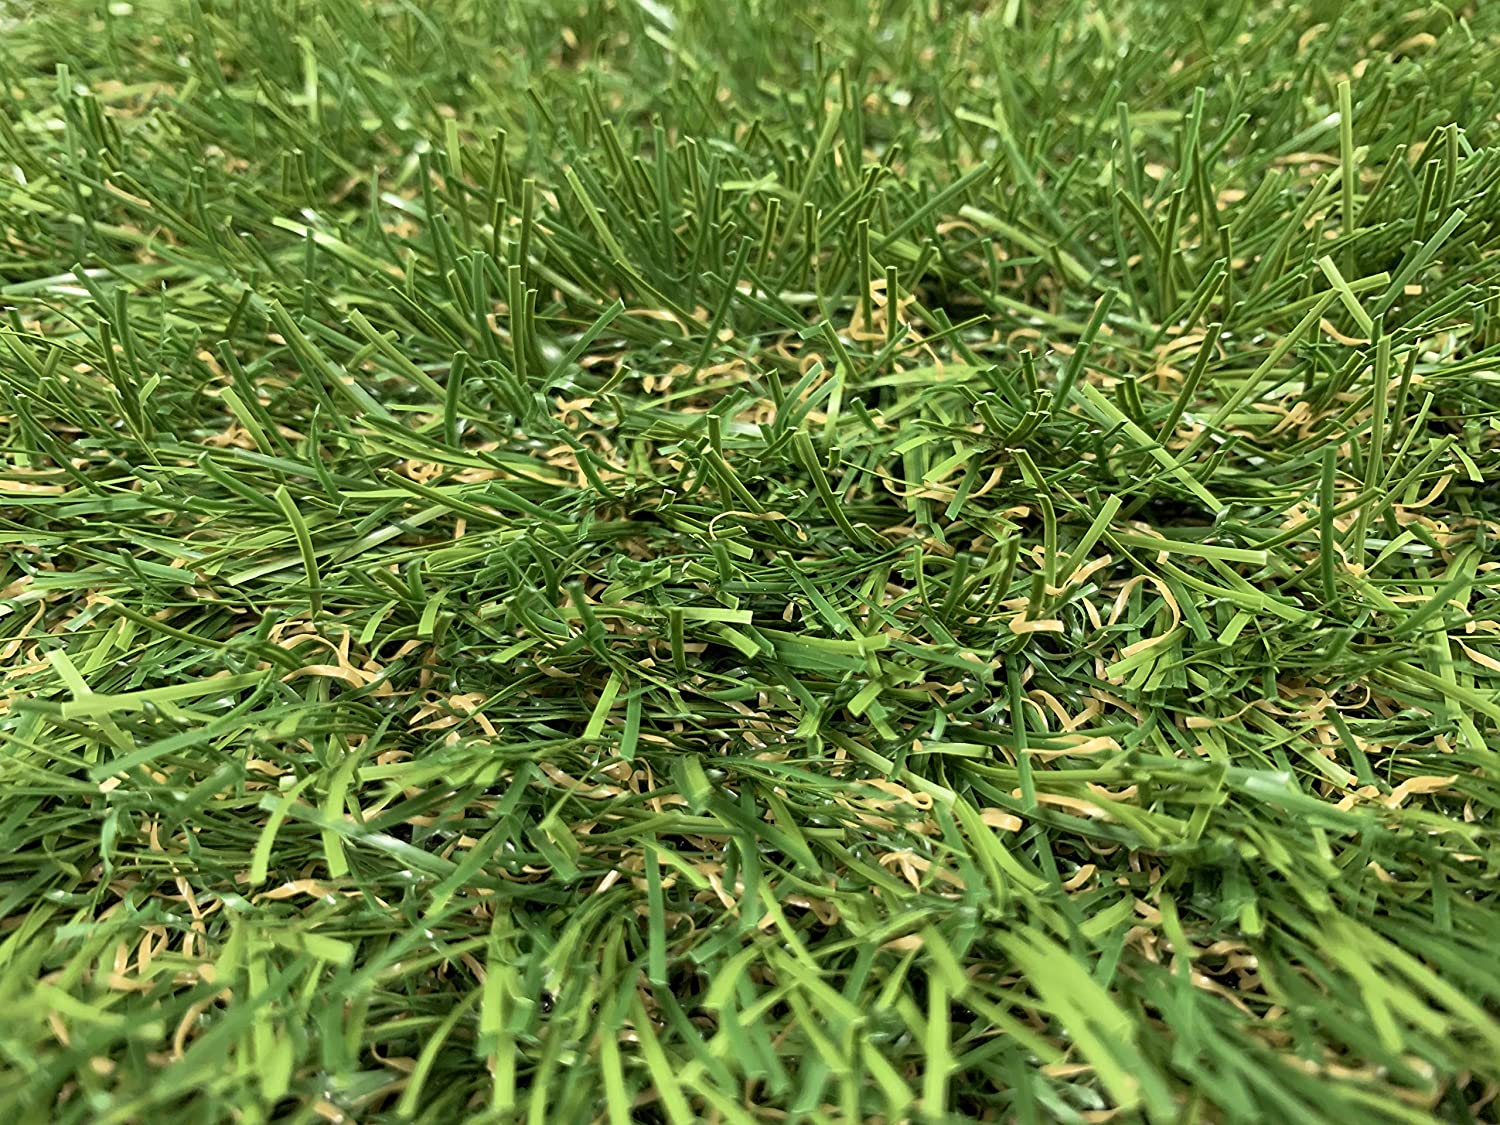 Realistic Artificial Grass 超人気 専門店 – 100% 訳あり品送料無料 Made Sizes Varying American